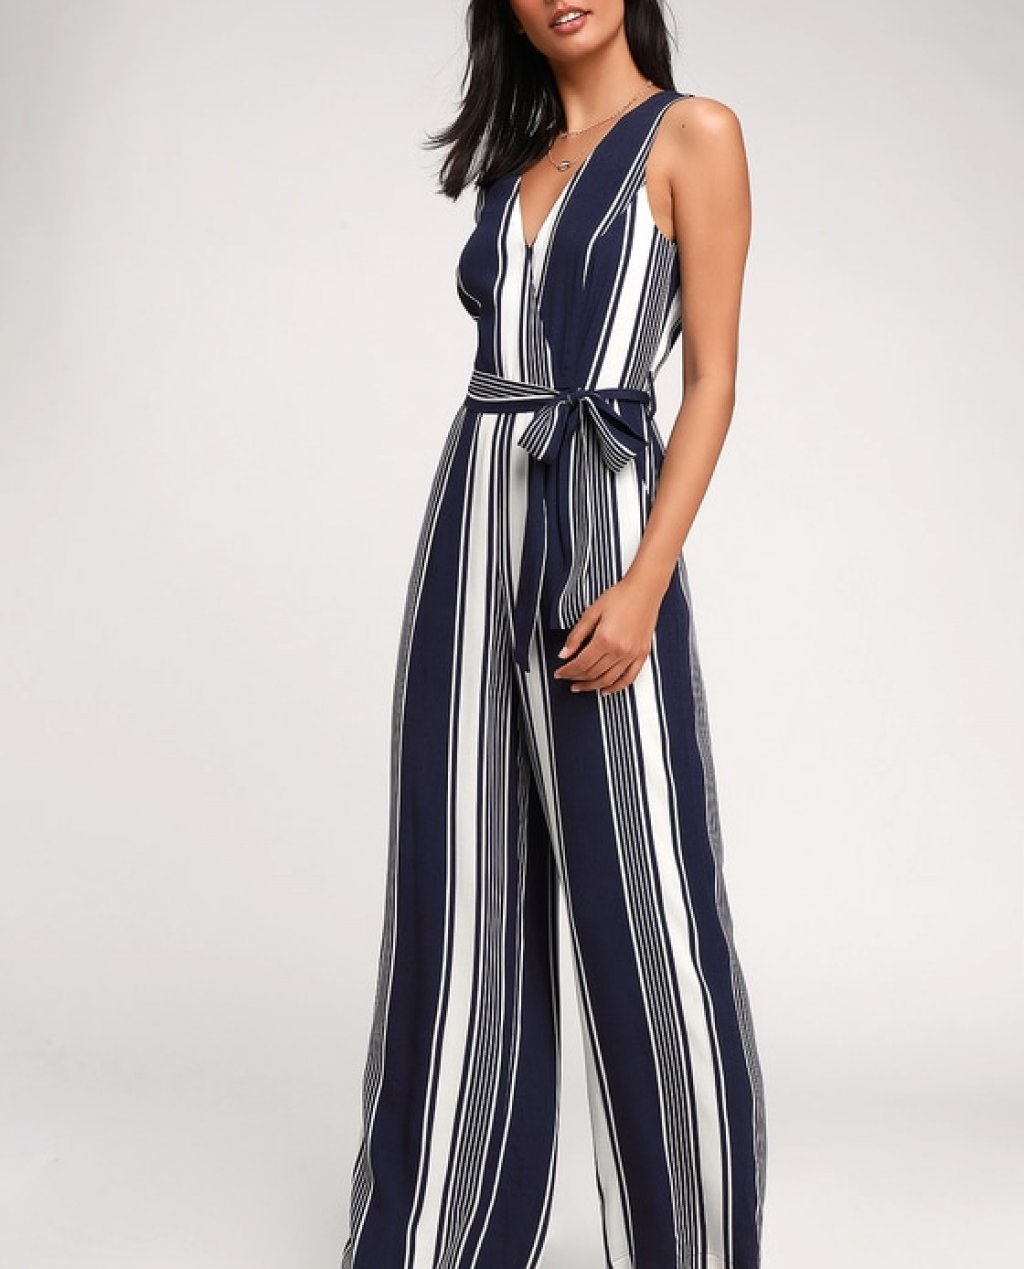 Maisee Navy Blue and White Striped Wide-Leg Jumpsuit